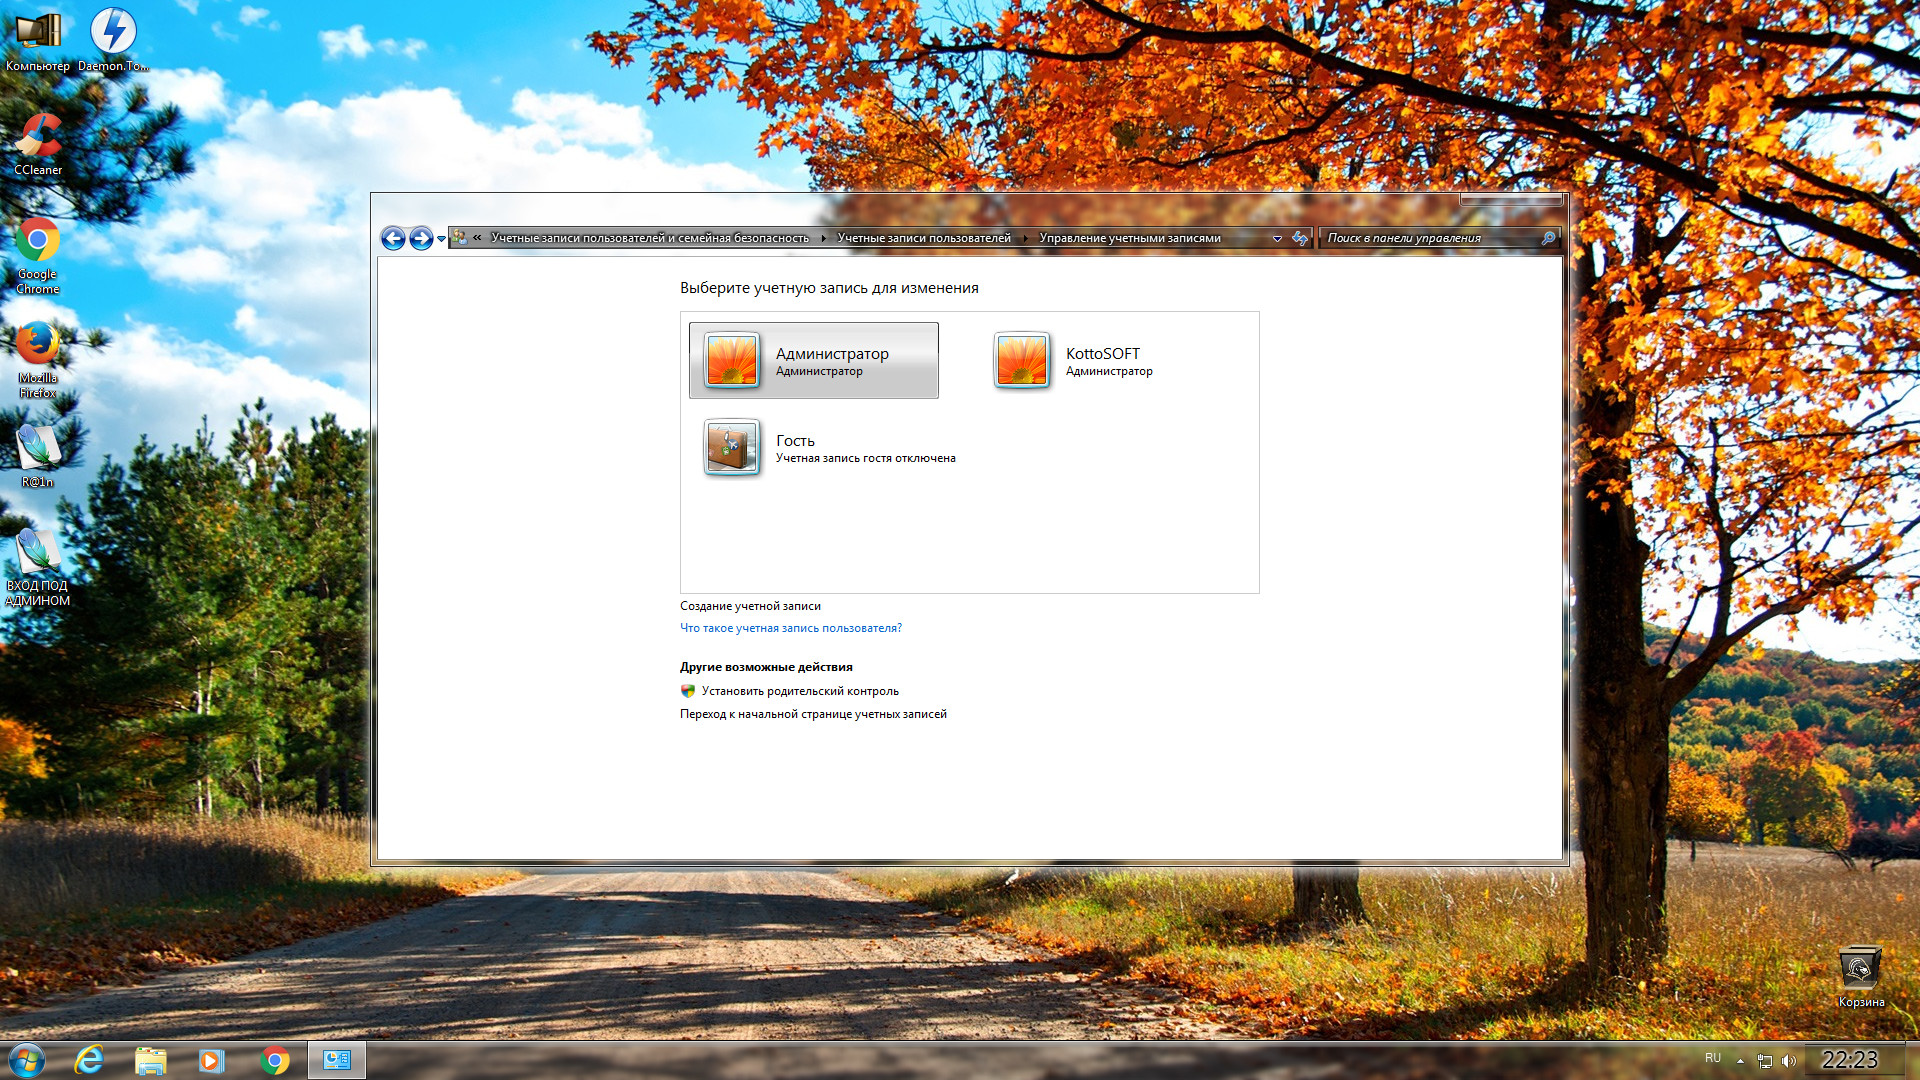 Windows 7 Professional SP1 KottoSOFT v.44 - «Windows»